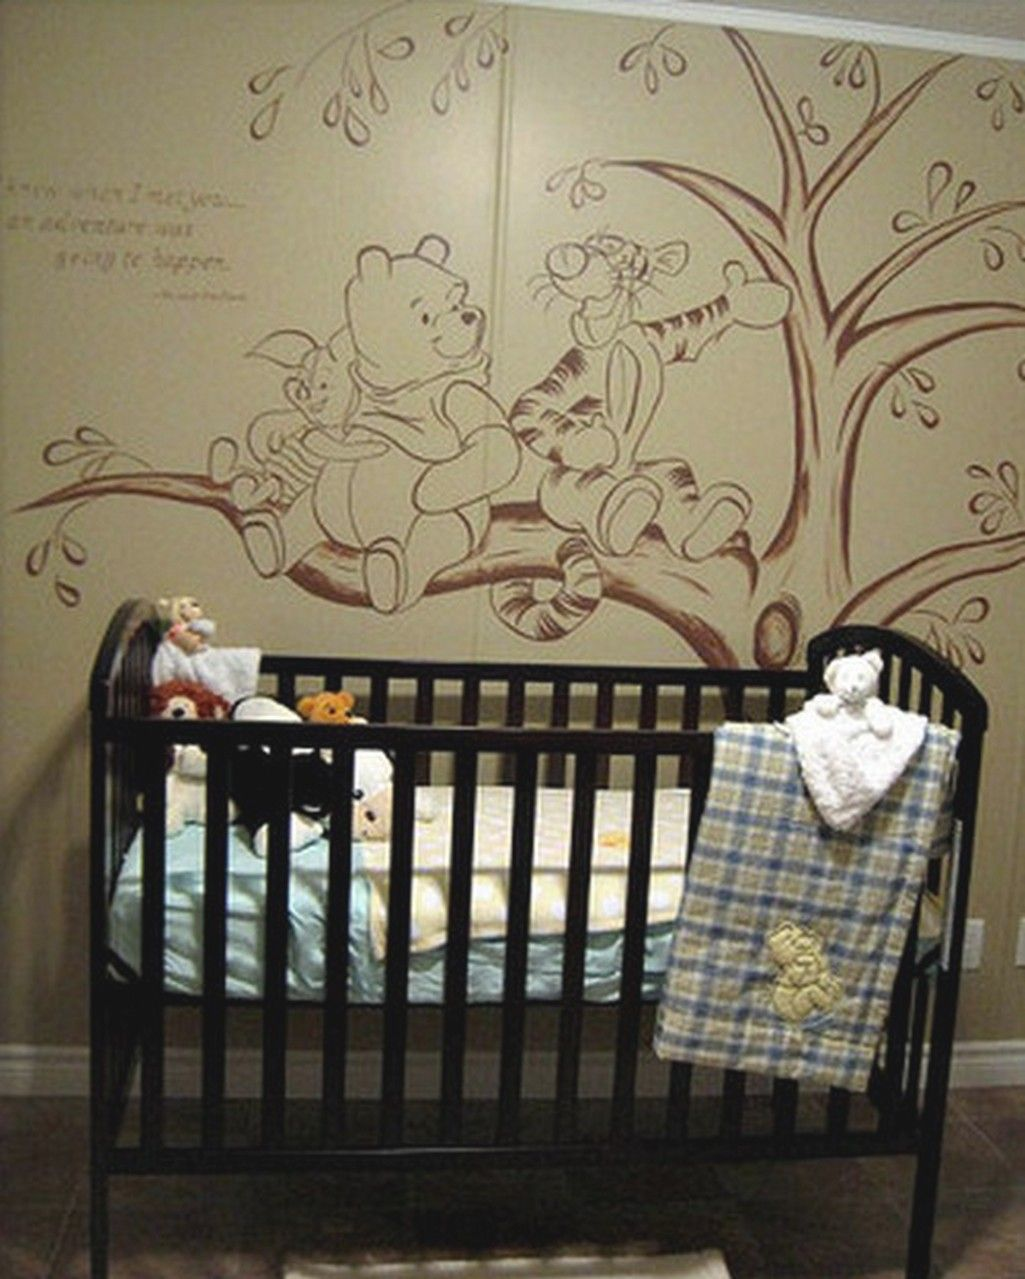 Baby Bedrooms In Lebanon: Bedroom, Classic Winnie The Pooh For Baby Nursery Decor